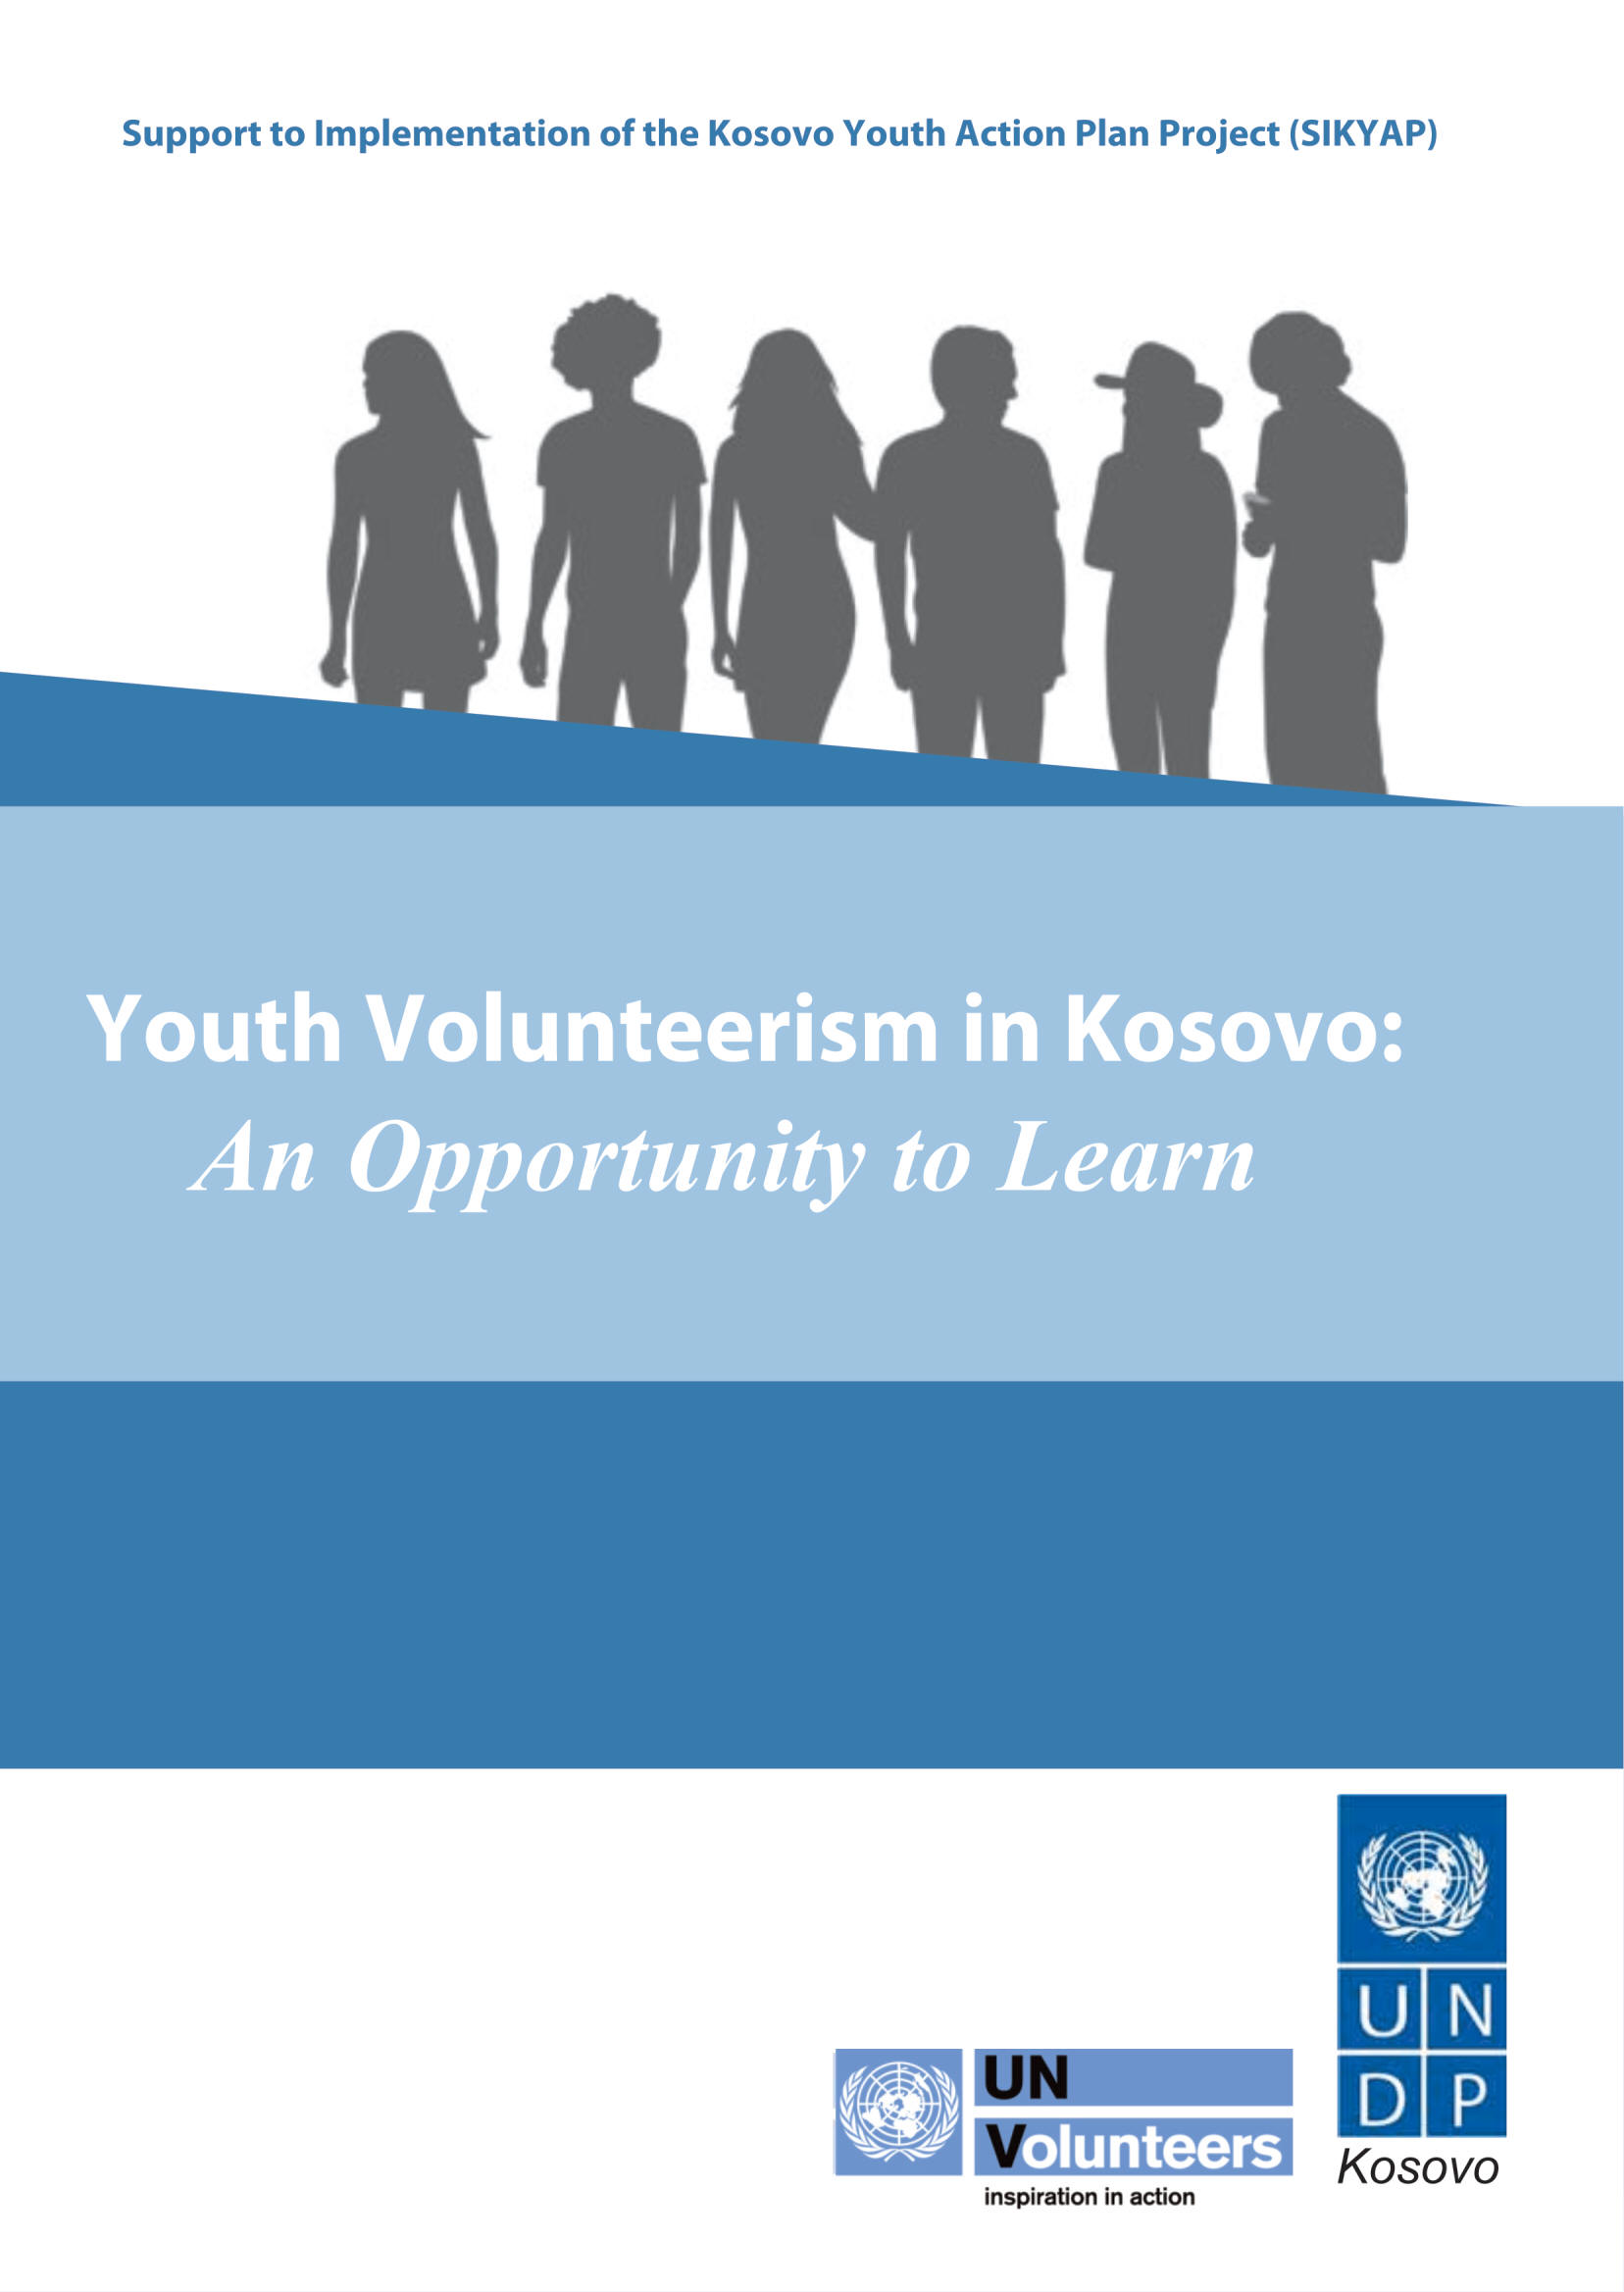 essays on youth volunteerism Read this essay on volunteerism come browse our large digital warehouse of free sample essays get the knowledge you need in order to pass your classes and more.